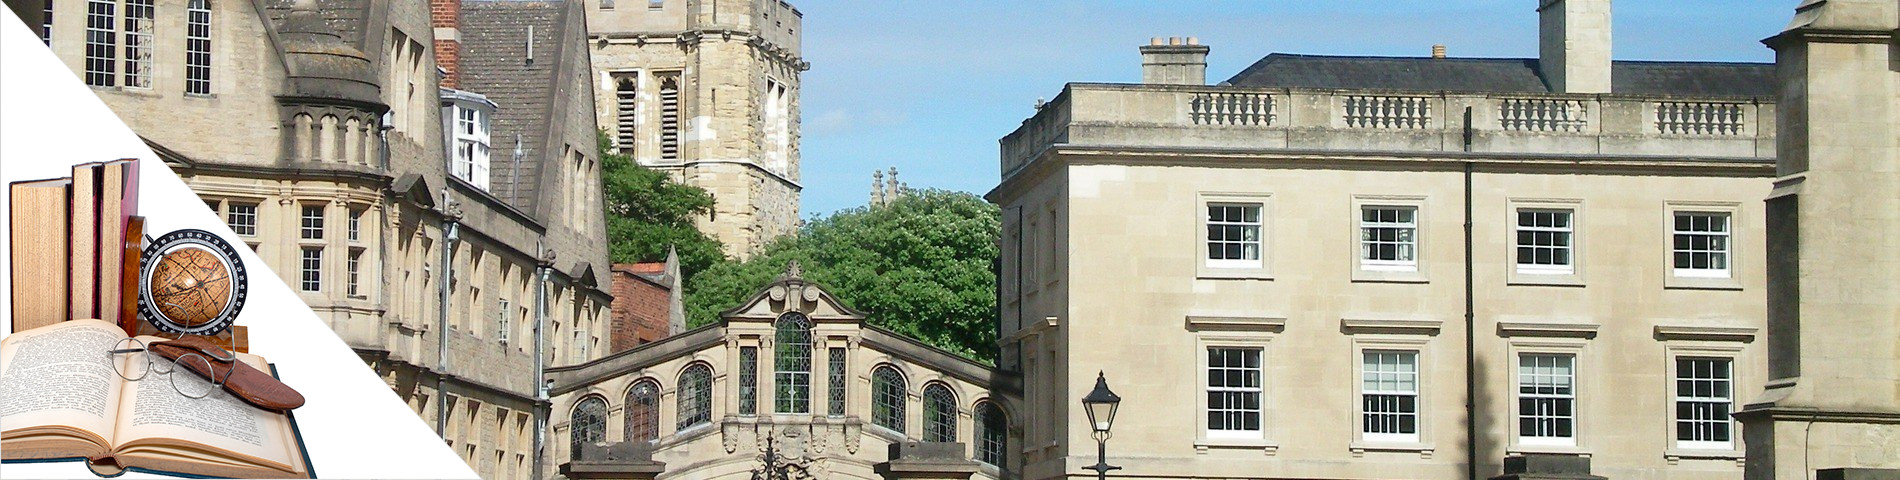 Oxford - English & Arts & Literature